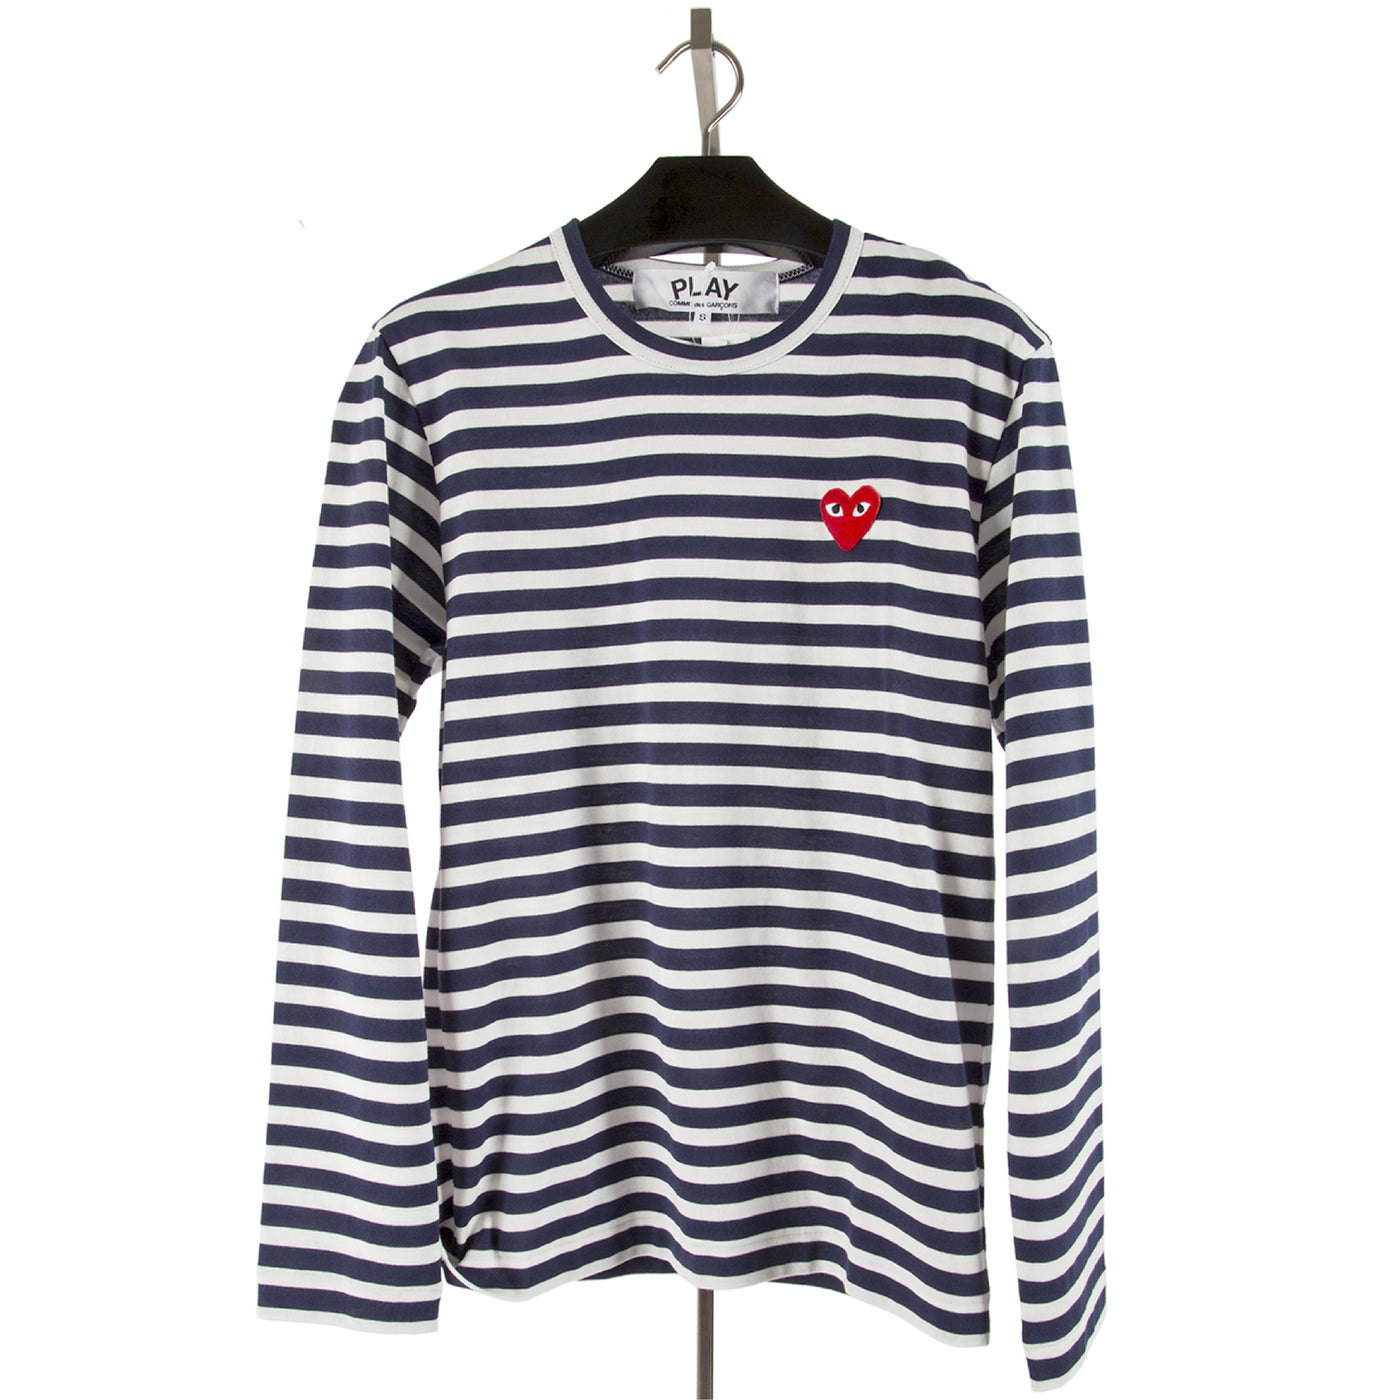 Load image into Gallery viewer, COMME DES GARCONS PLAY LONG-SLEEVE T-SHIRT NAVY